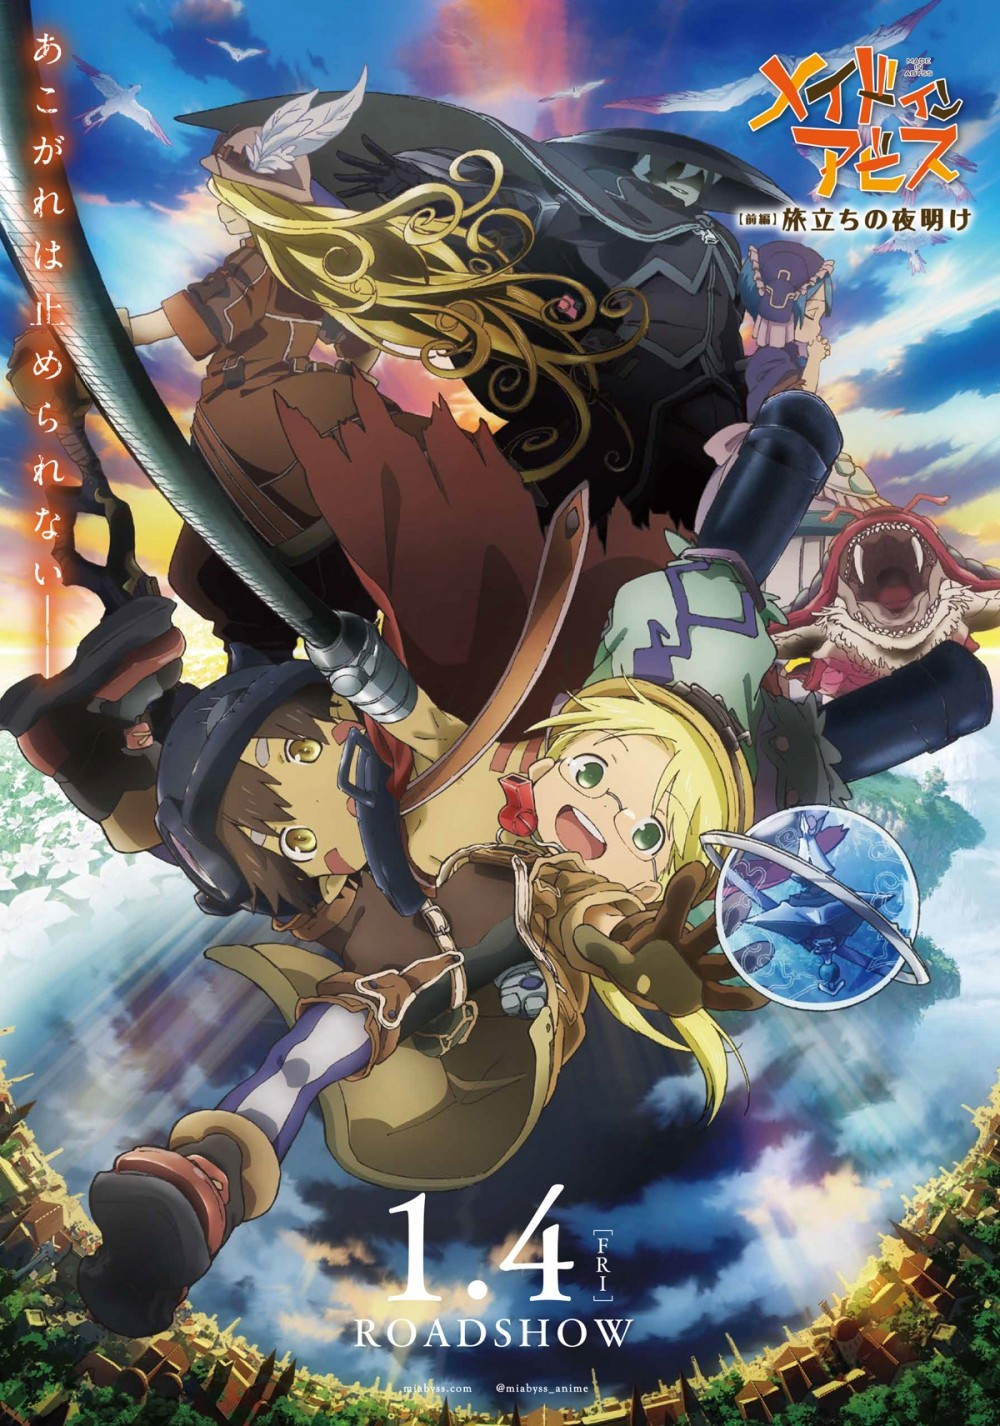 Made in Abyss: Journey's Dawn (2019) - IMDb